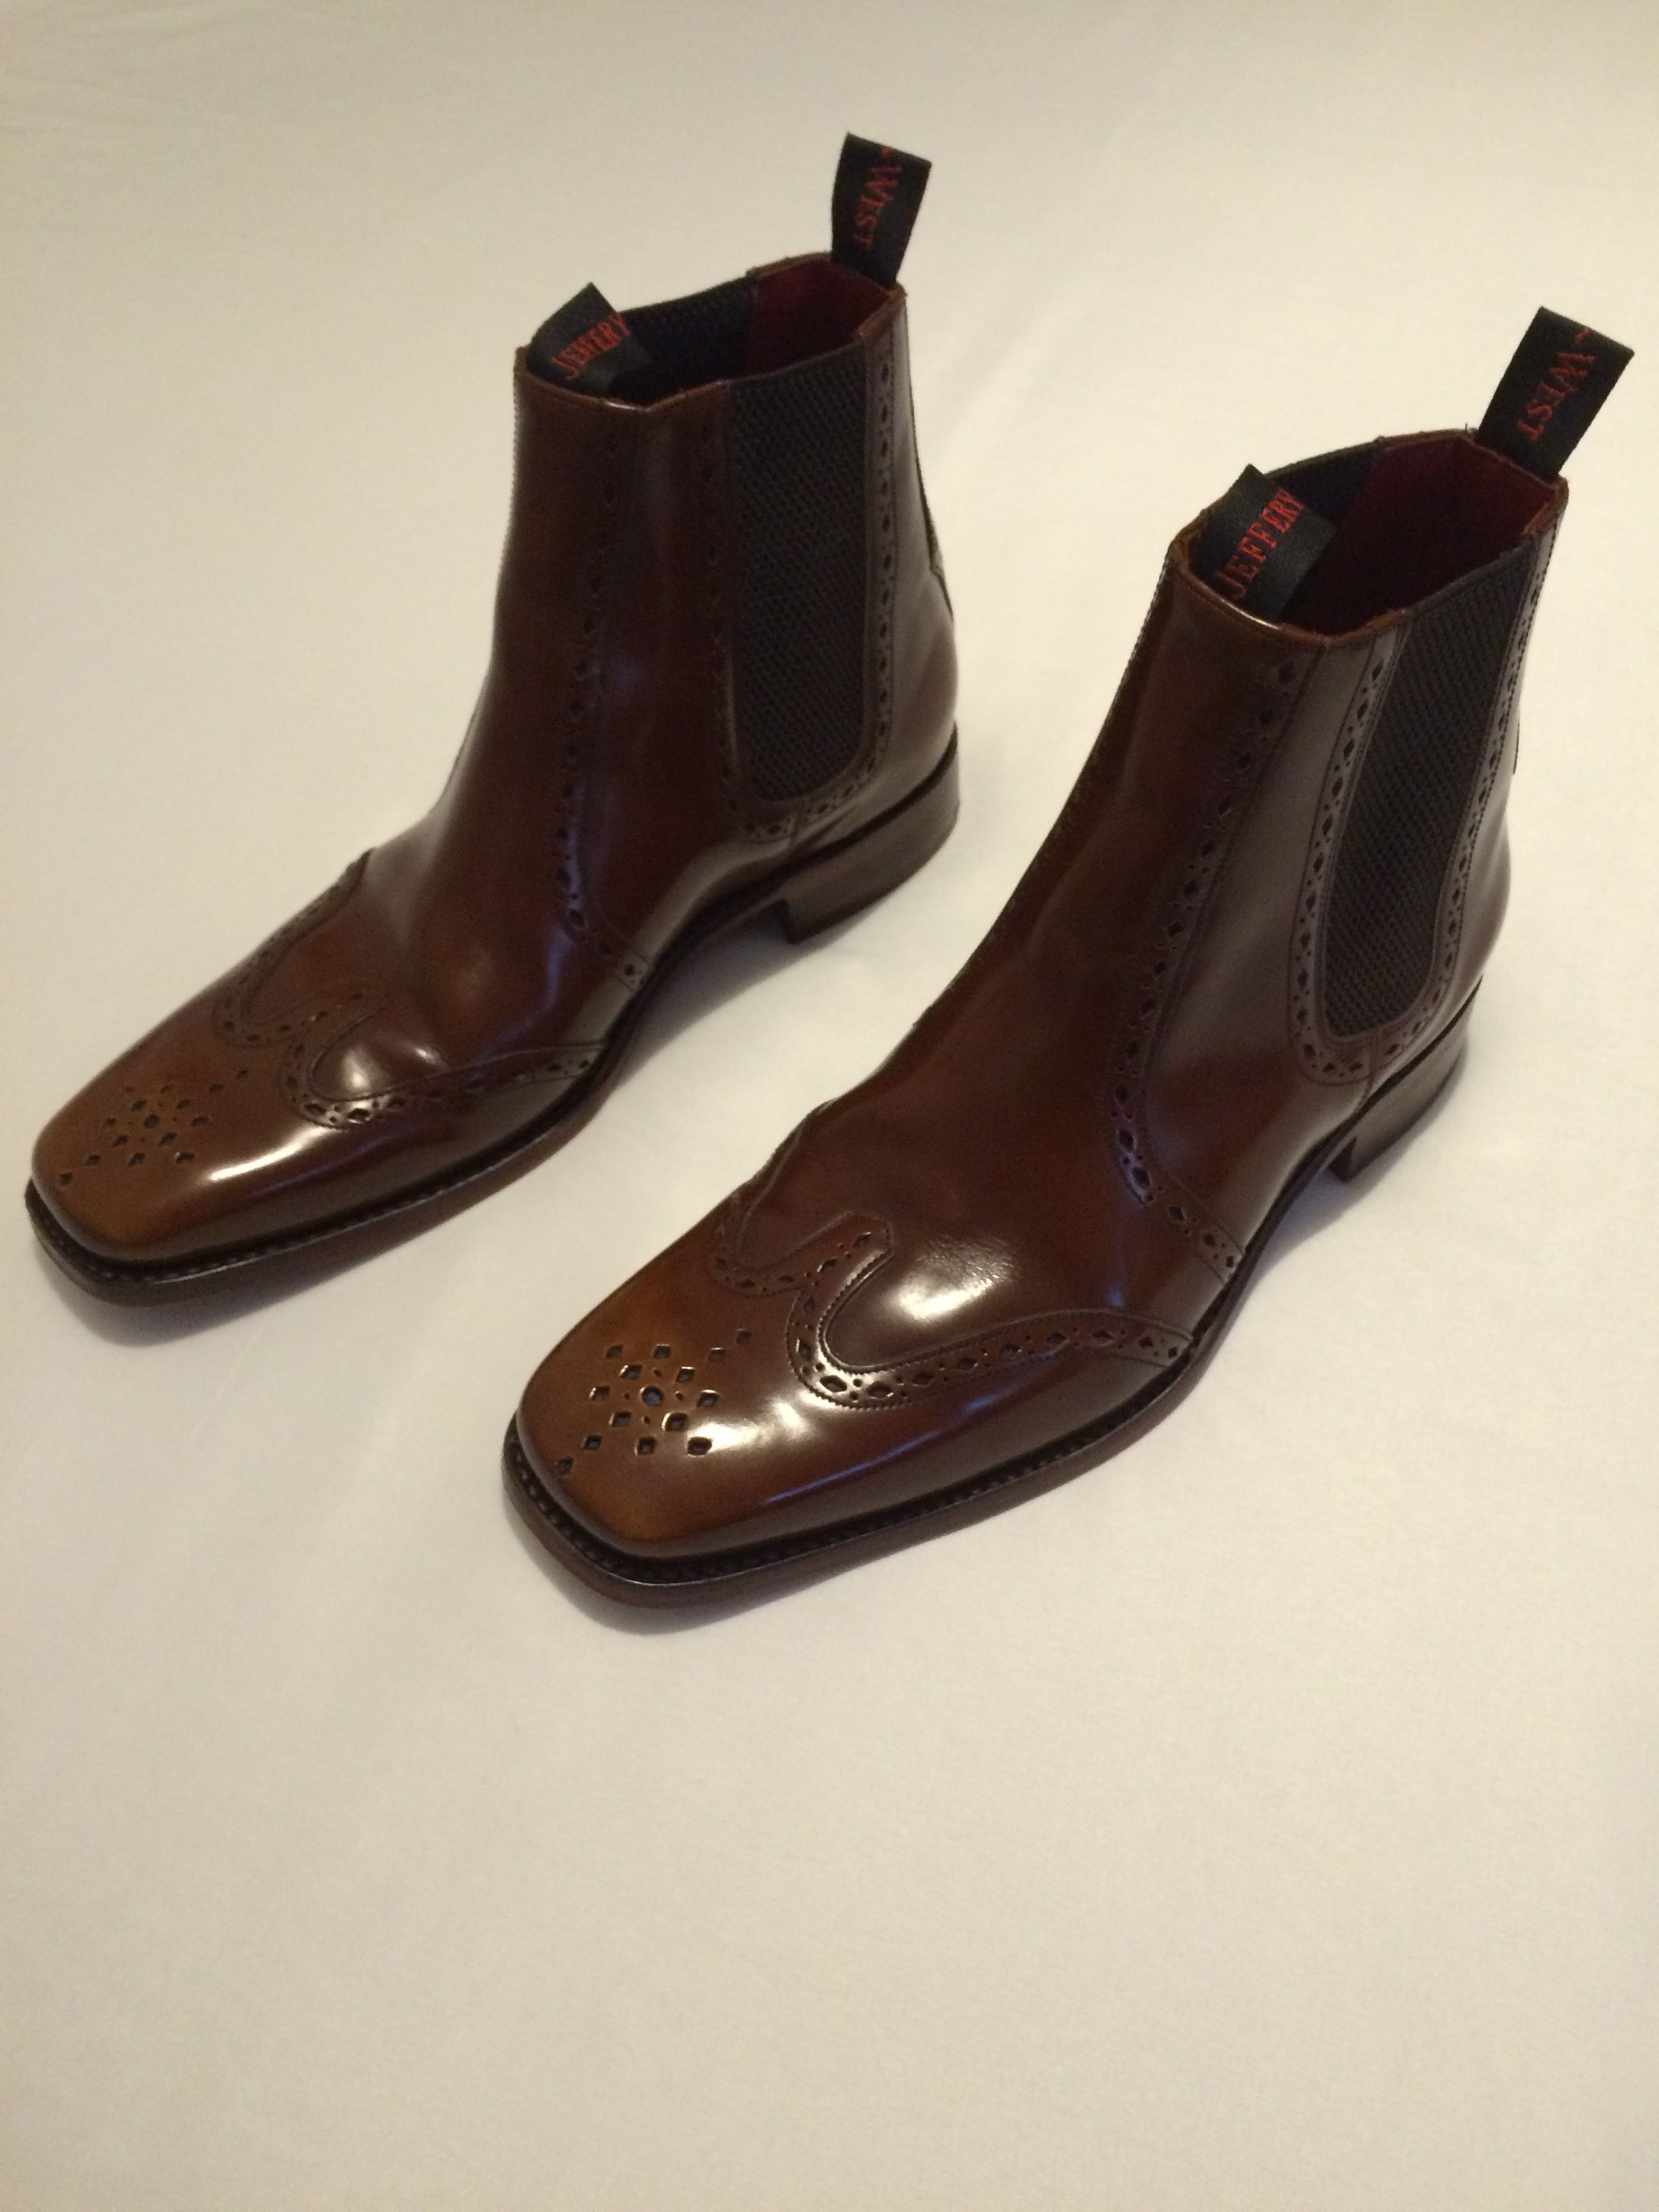 3537804484649 Very nice Jeffery West mens brogue leather chelsea boots in excellent  condition. No rips or tears; only minor creases on both shoes (top, where  the shoe ...